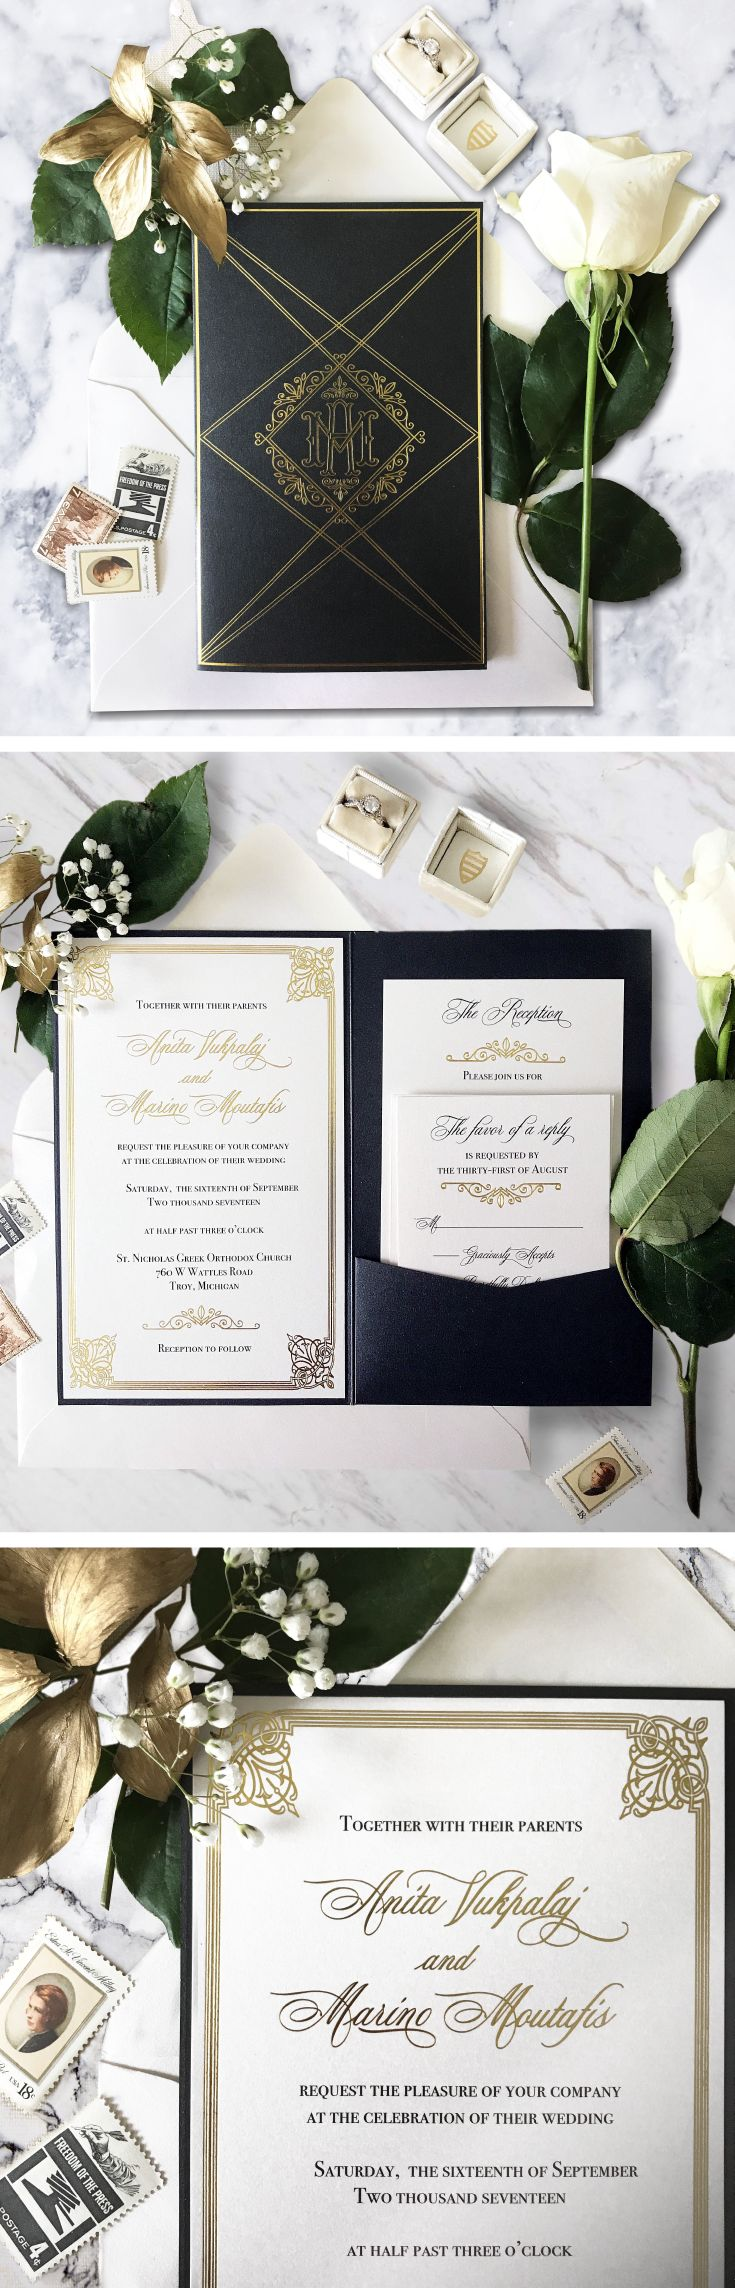 white and gold wedding invitations%0A Best     Wedding invitation design ideas on Pinterest   Wedding invitations   Wedding invitation text and Wedding stationary